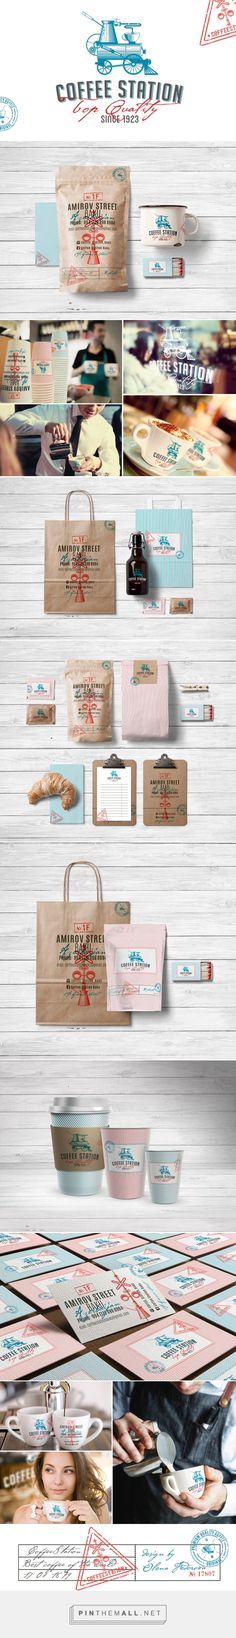 Branding packaging for the coffee shop Coffee Station on Behance by Olena Federova curated by Packaging Diva PD. Makes you want to get together for a cuppa.